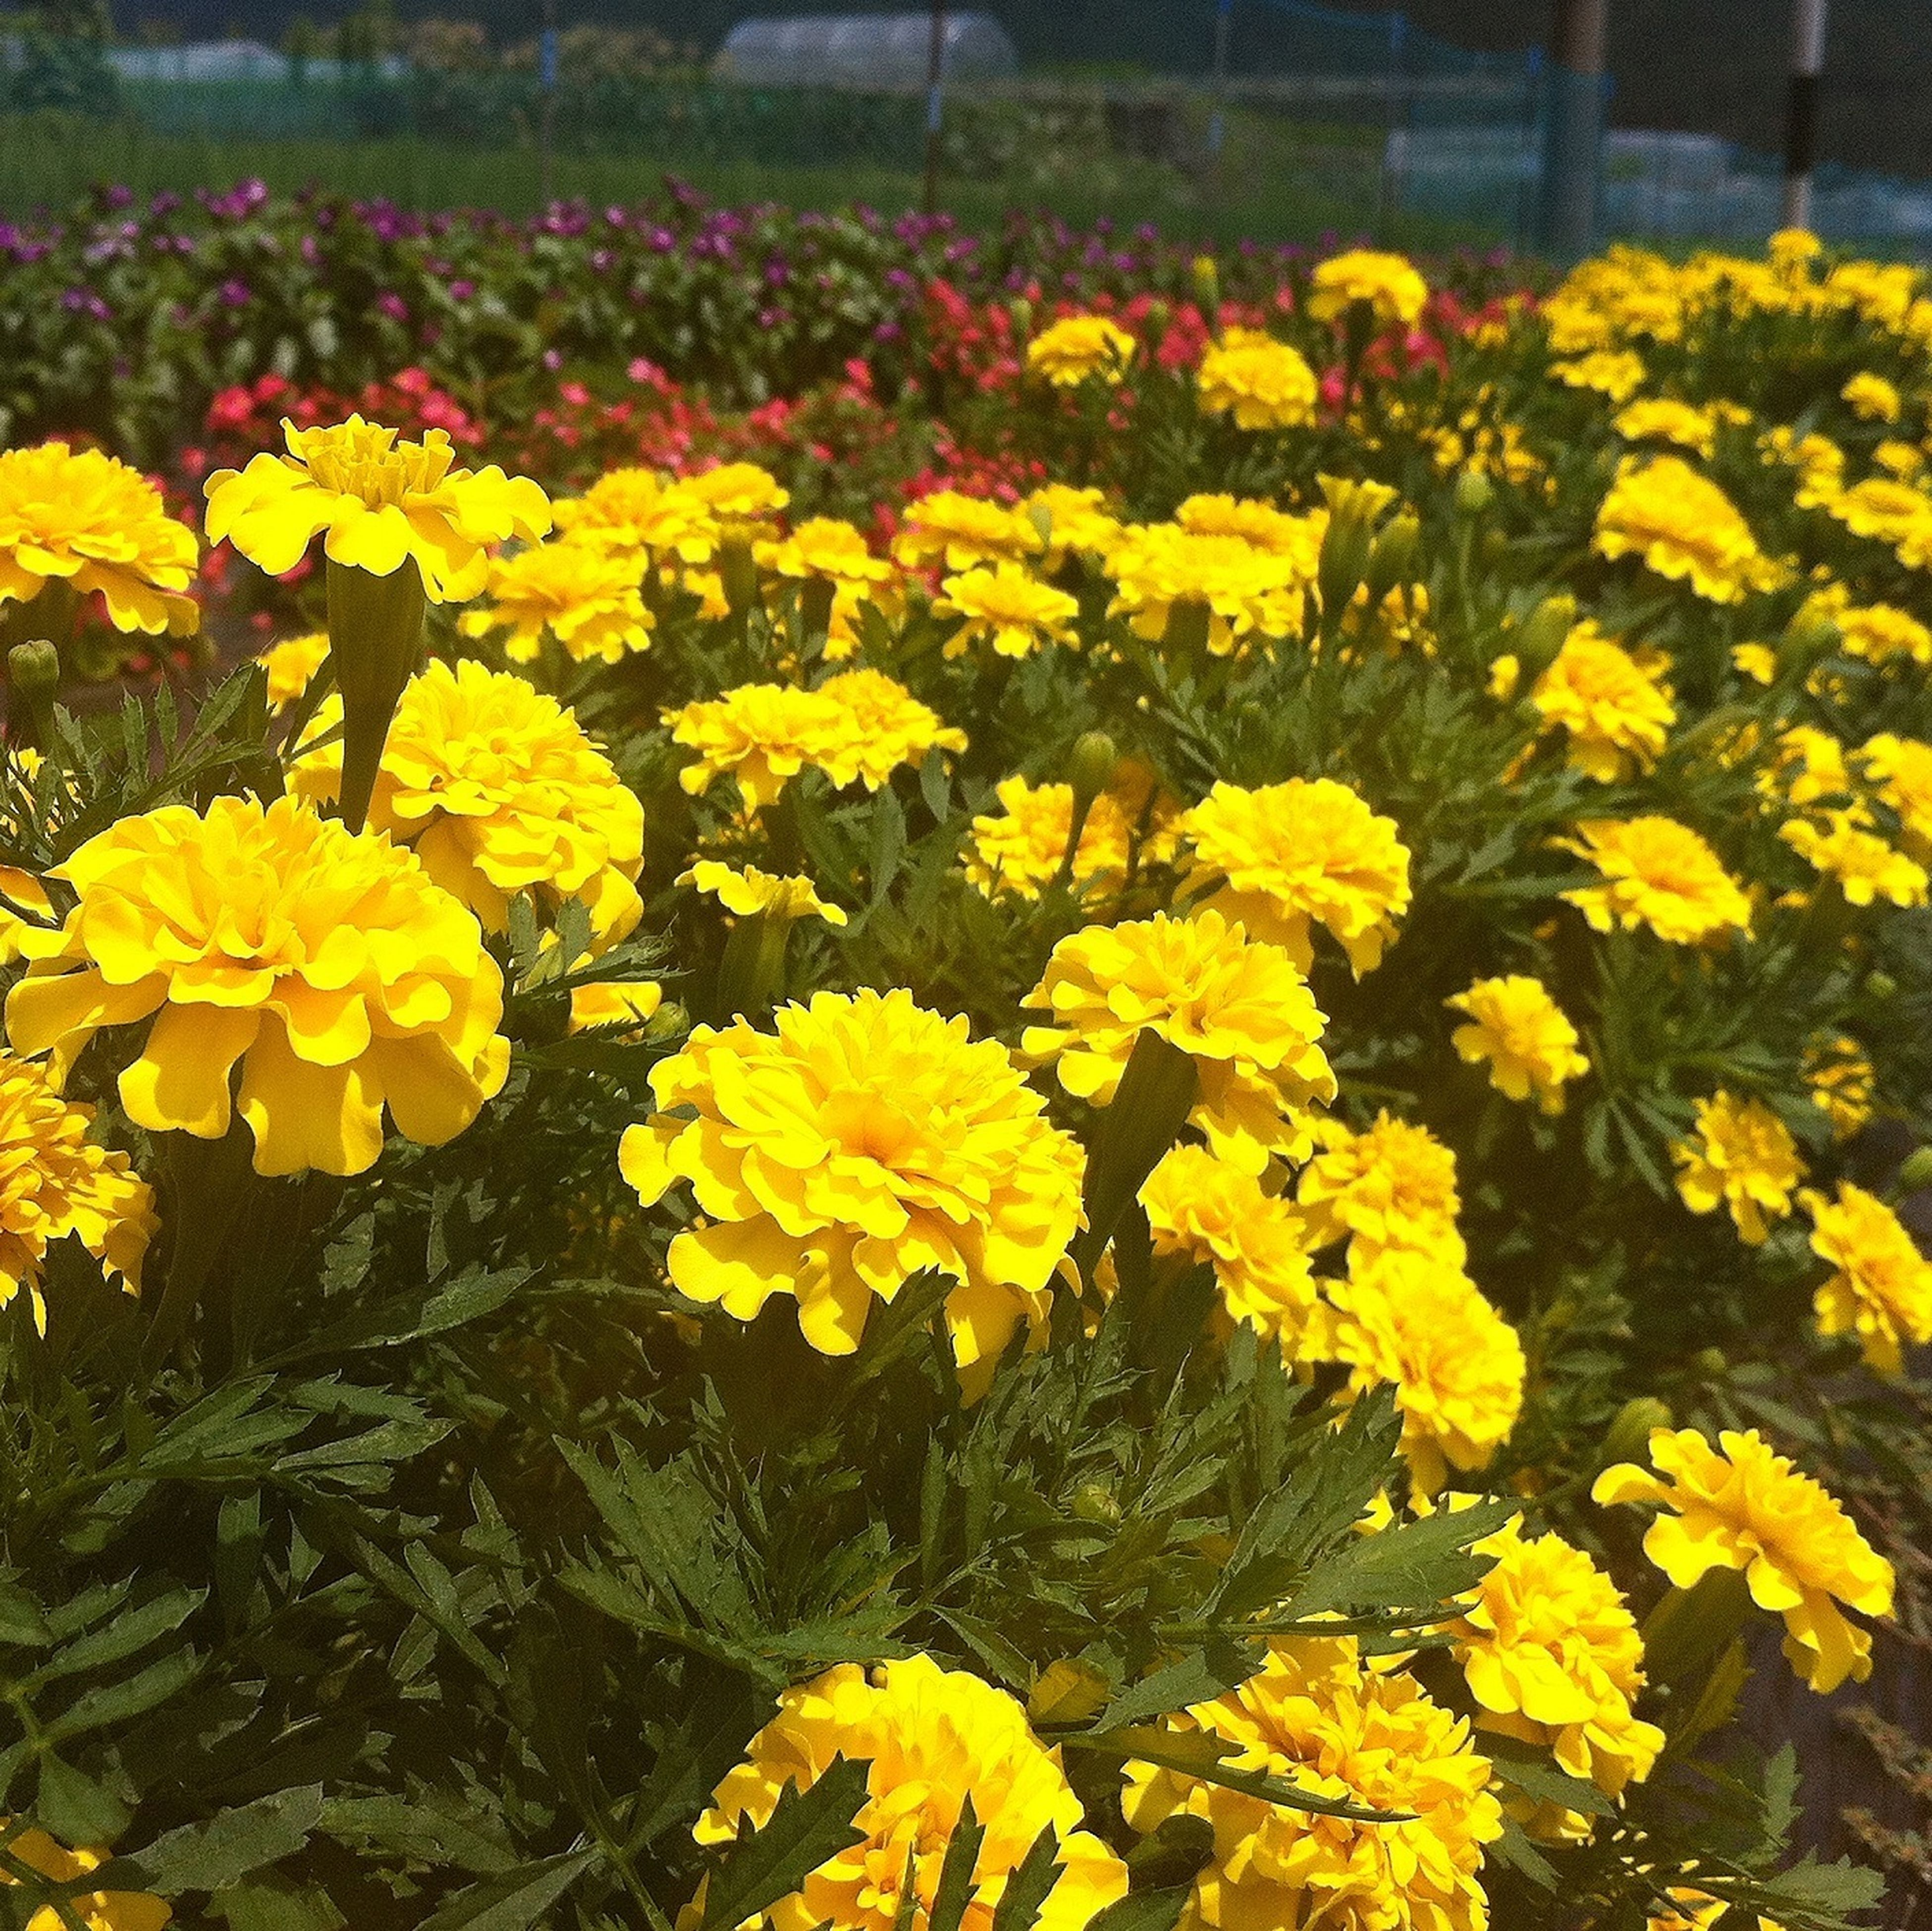 flower, yellow, freshness, fragility, growth, beauty in nature, petal, abundance, nature, blooming, plant, field, flowerbed, flower head, high angle view, in bloom, blossom, springtime, outdoors, park - man made space